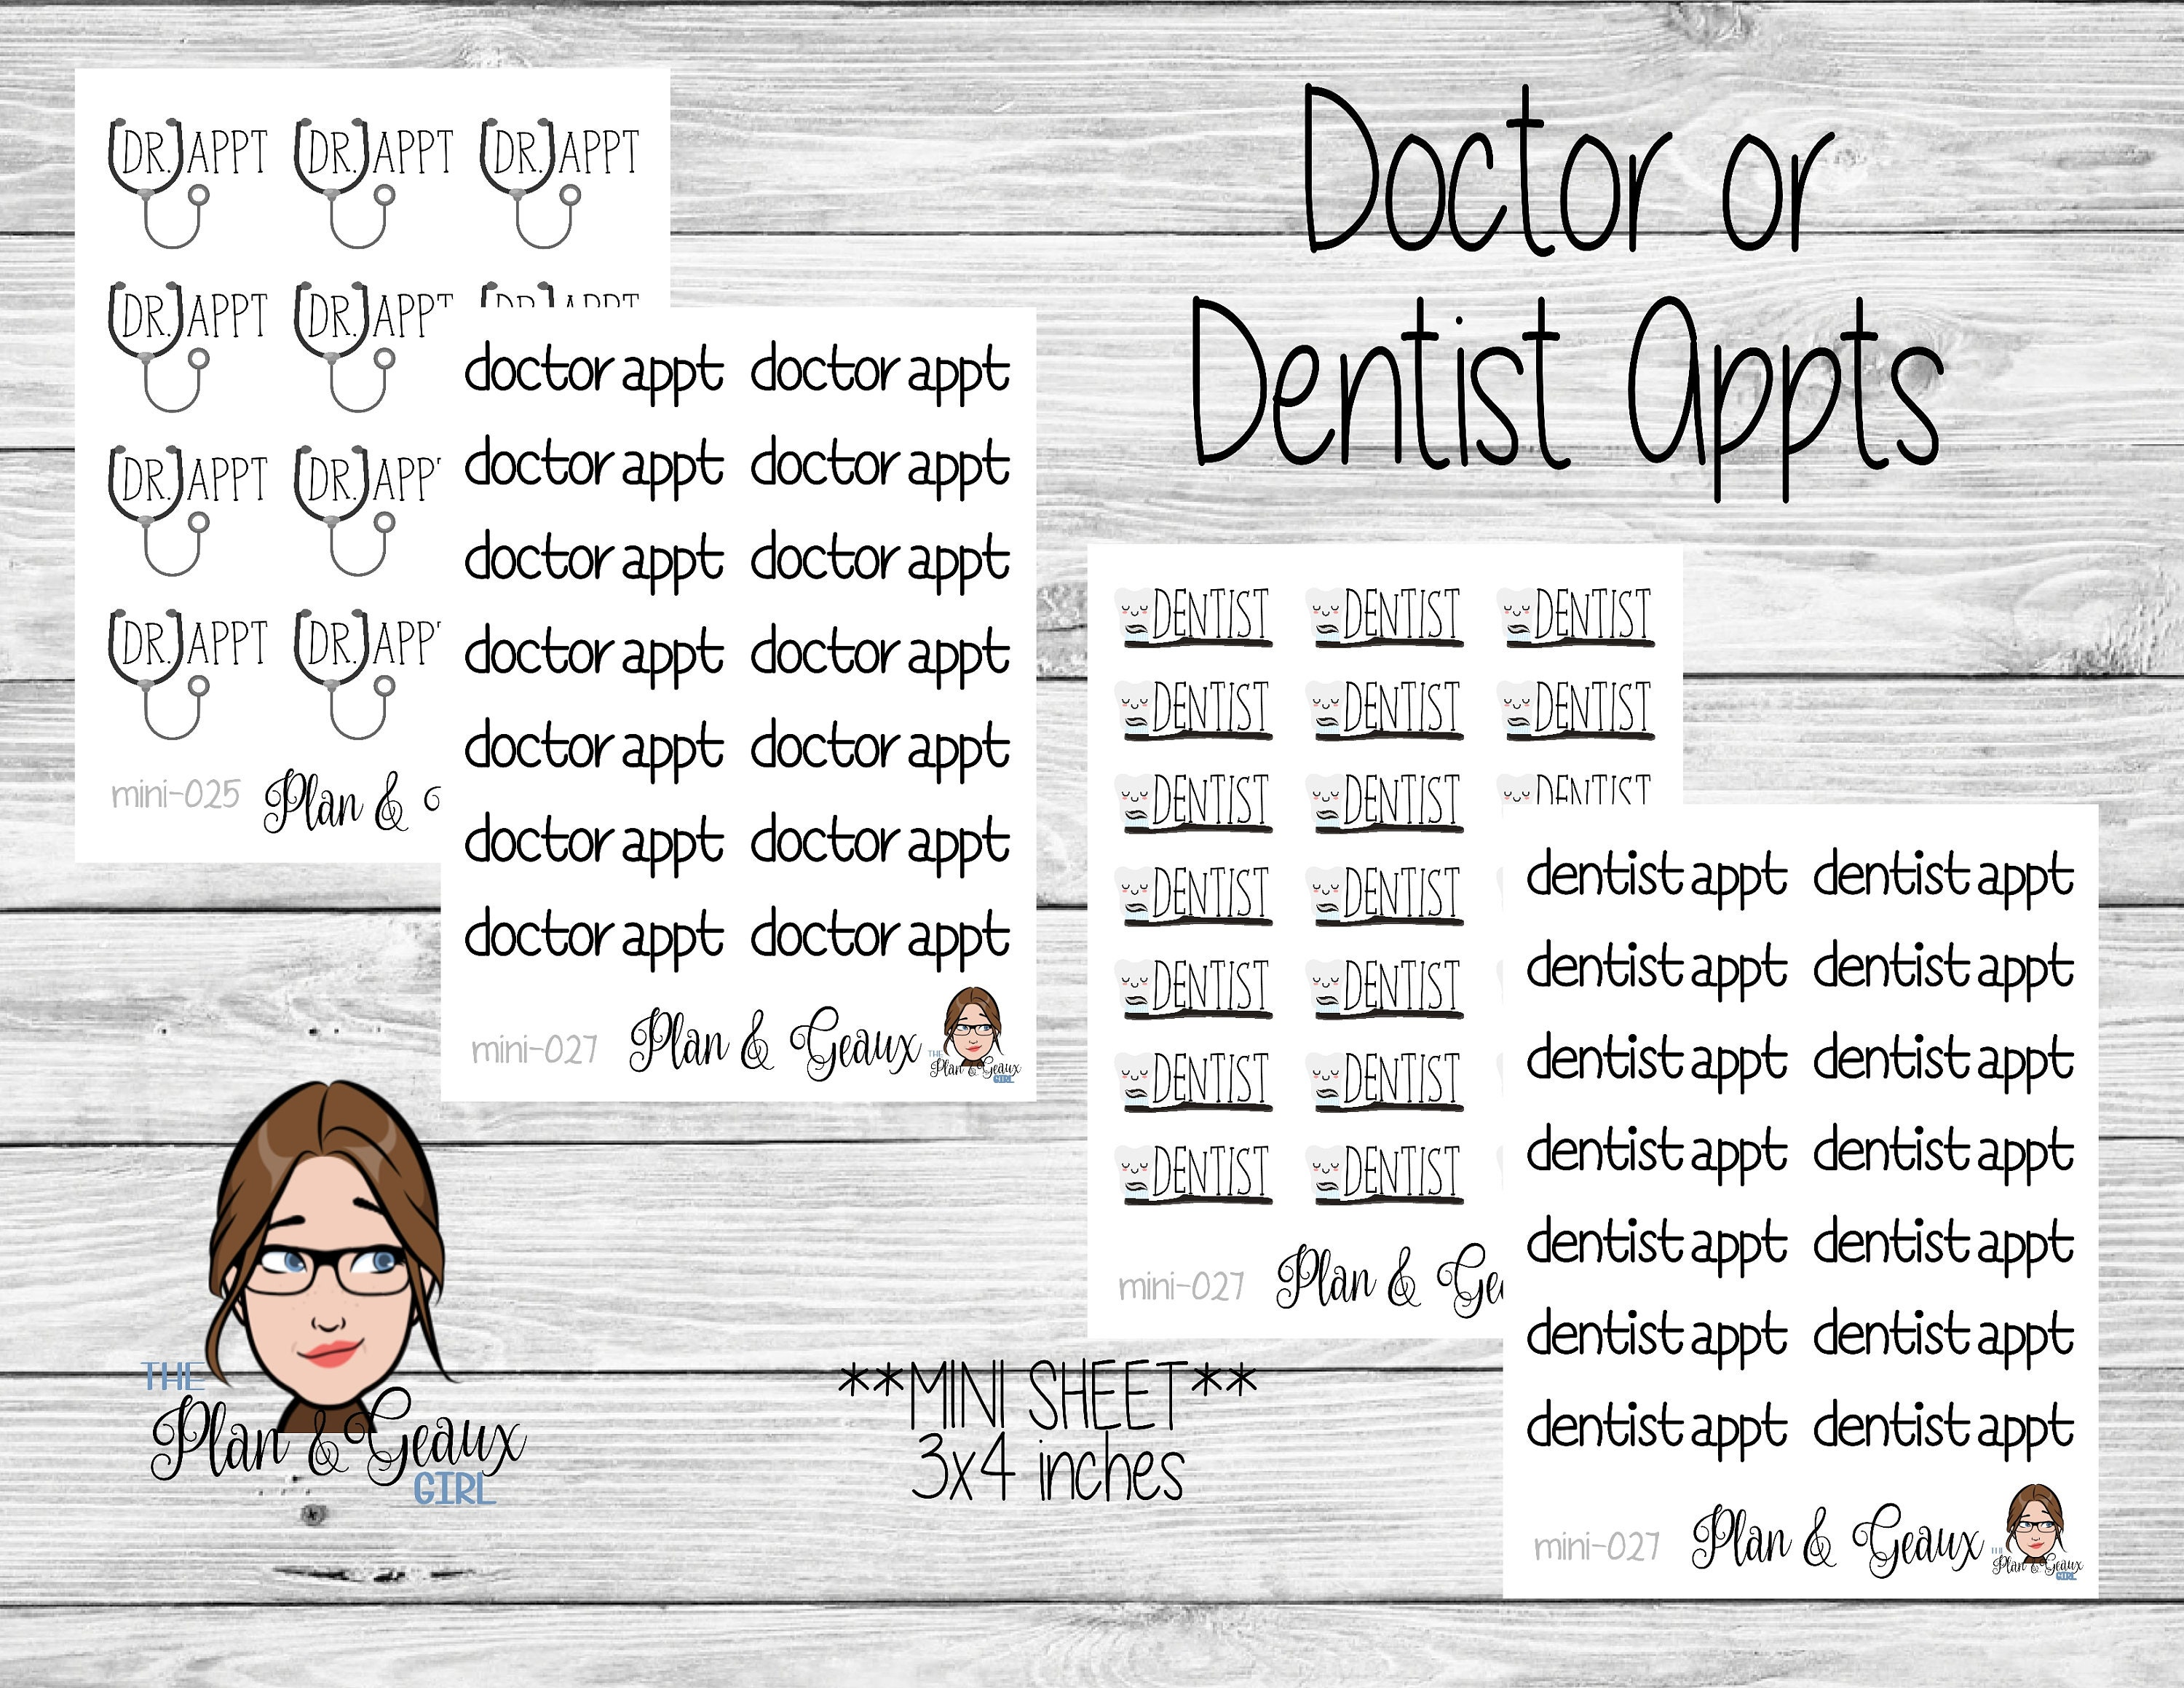 Doctor Appointment Planner Stickers, Dentist Appointment Planner Stickers,  MINI Sheets, Personal Planner, Bullet Journal, MINI-025